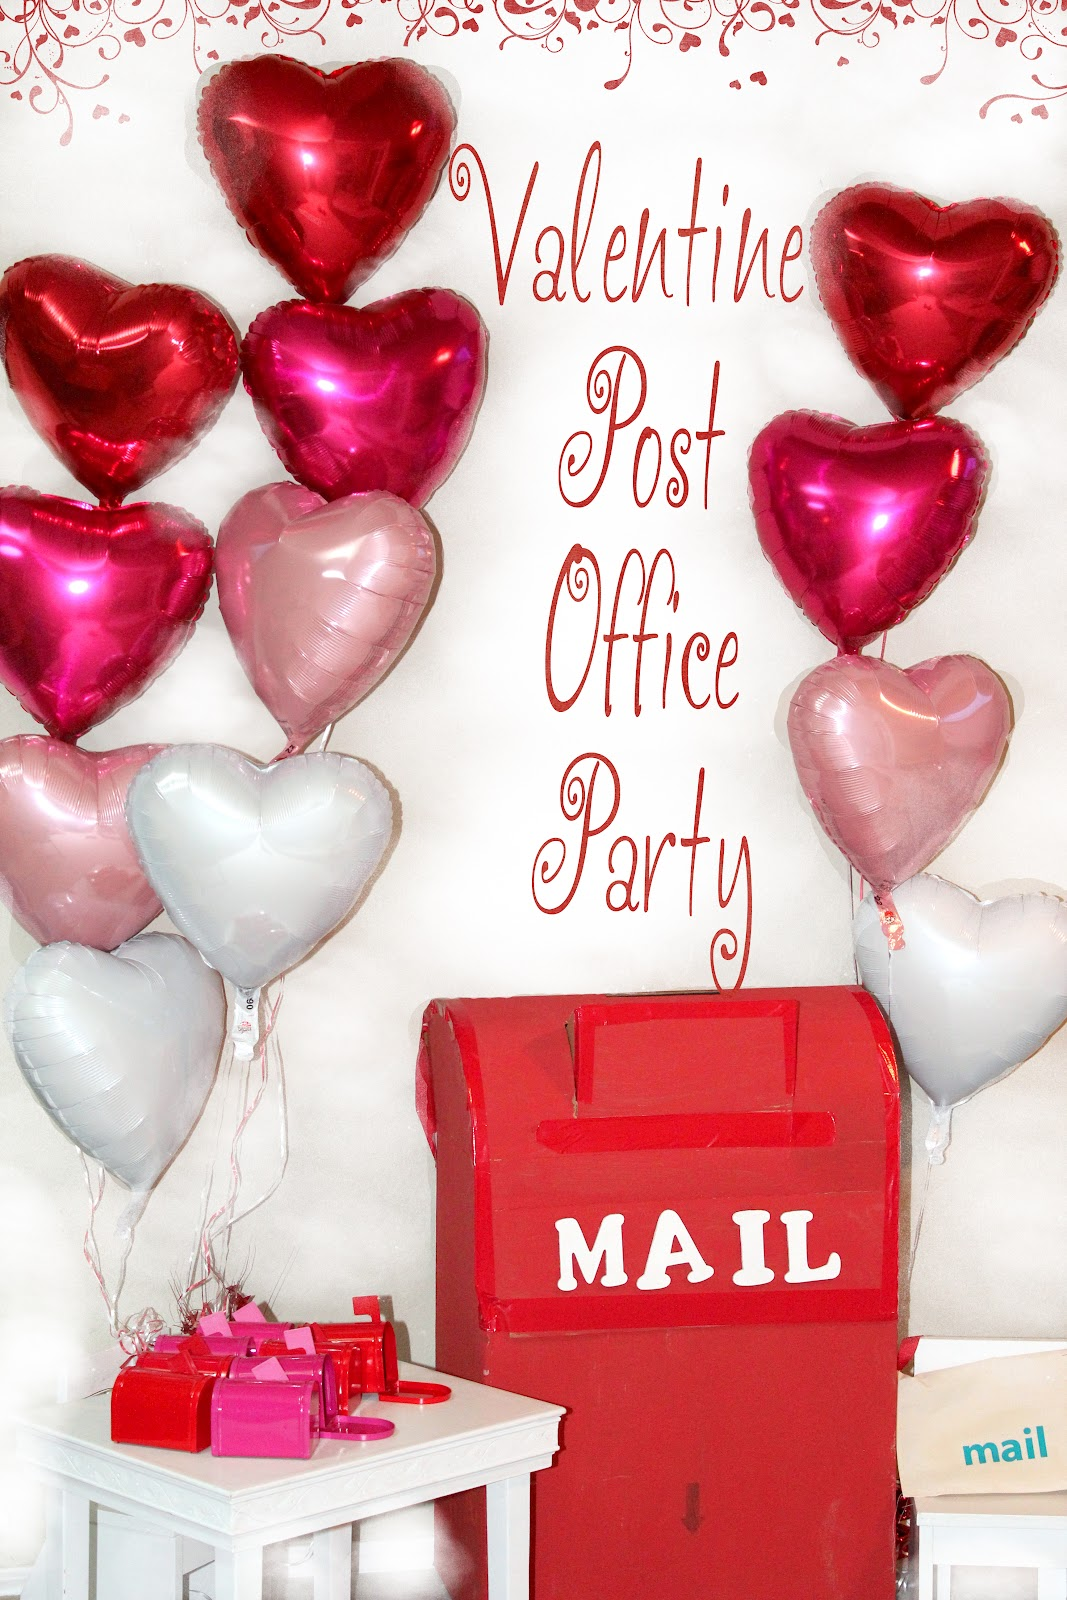 Clever Faeries Valentine Post Office Party